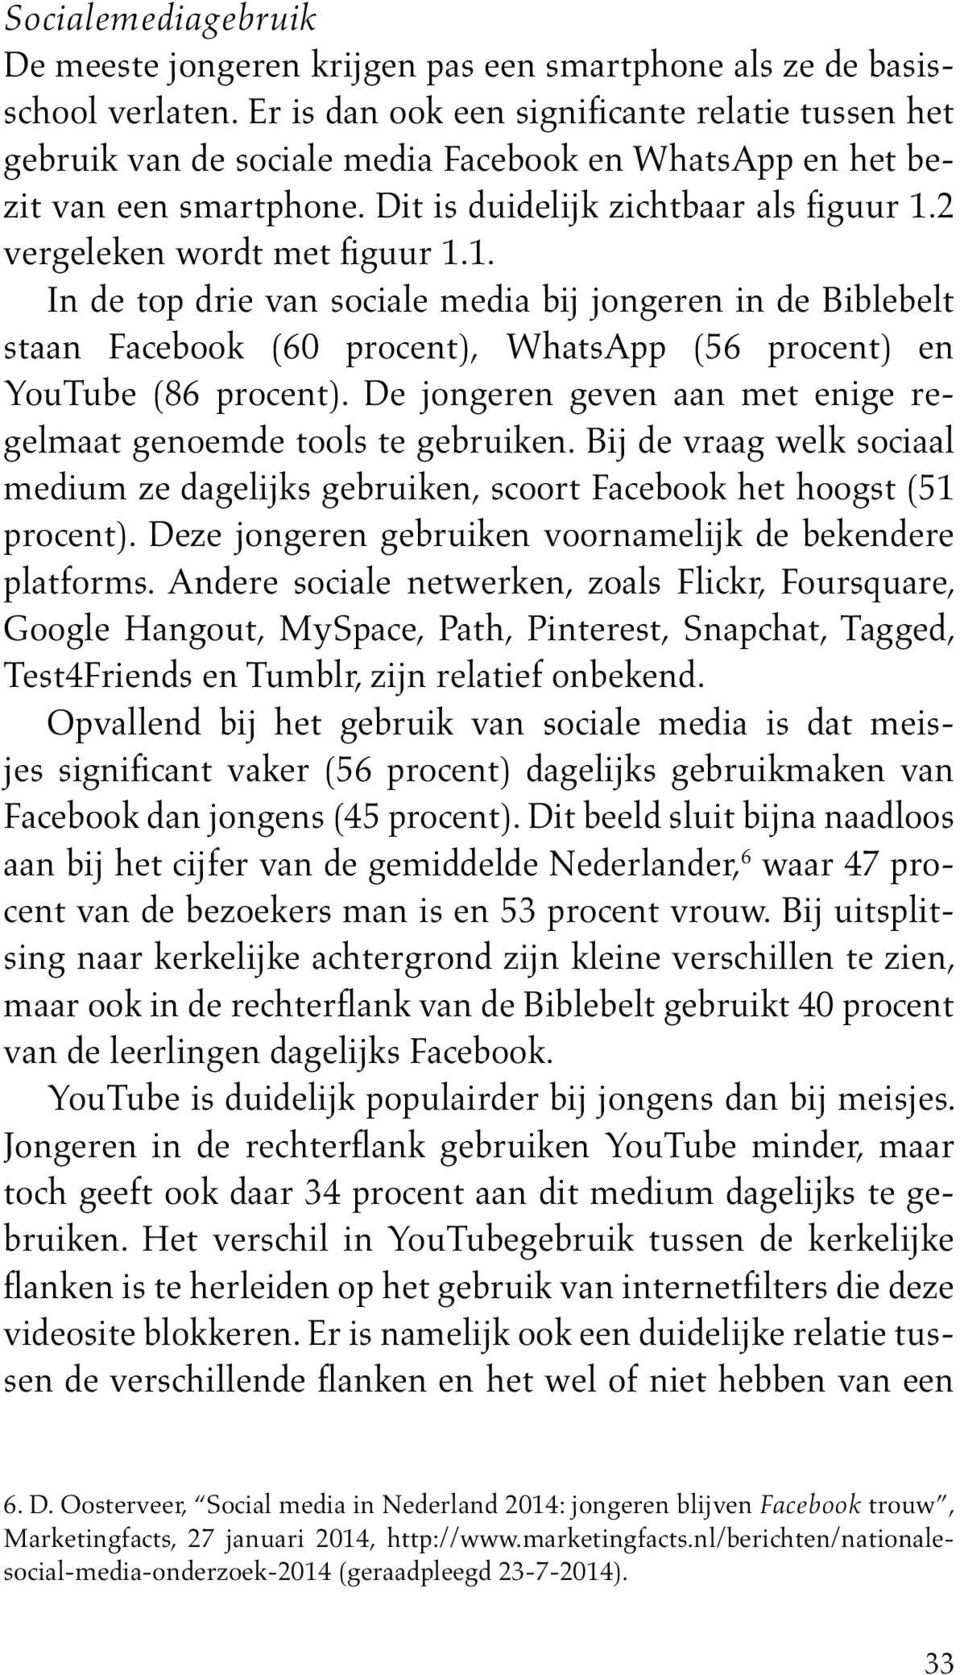 2 vergeleken wordt met figuur 1.1. In de top drie van sociale media bij jongeren in de Biblebelt staan Facebook (60 procent), WhatsApp (56 procent) en YouTube (86 procent).